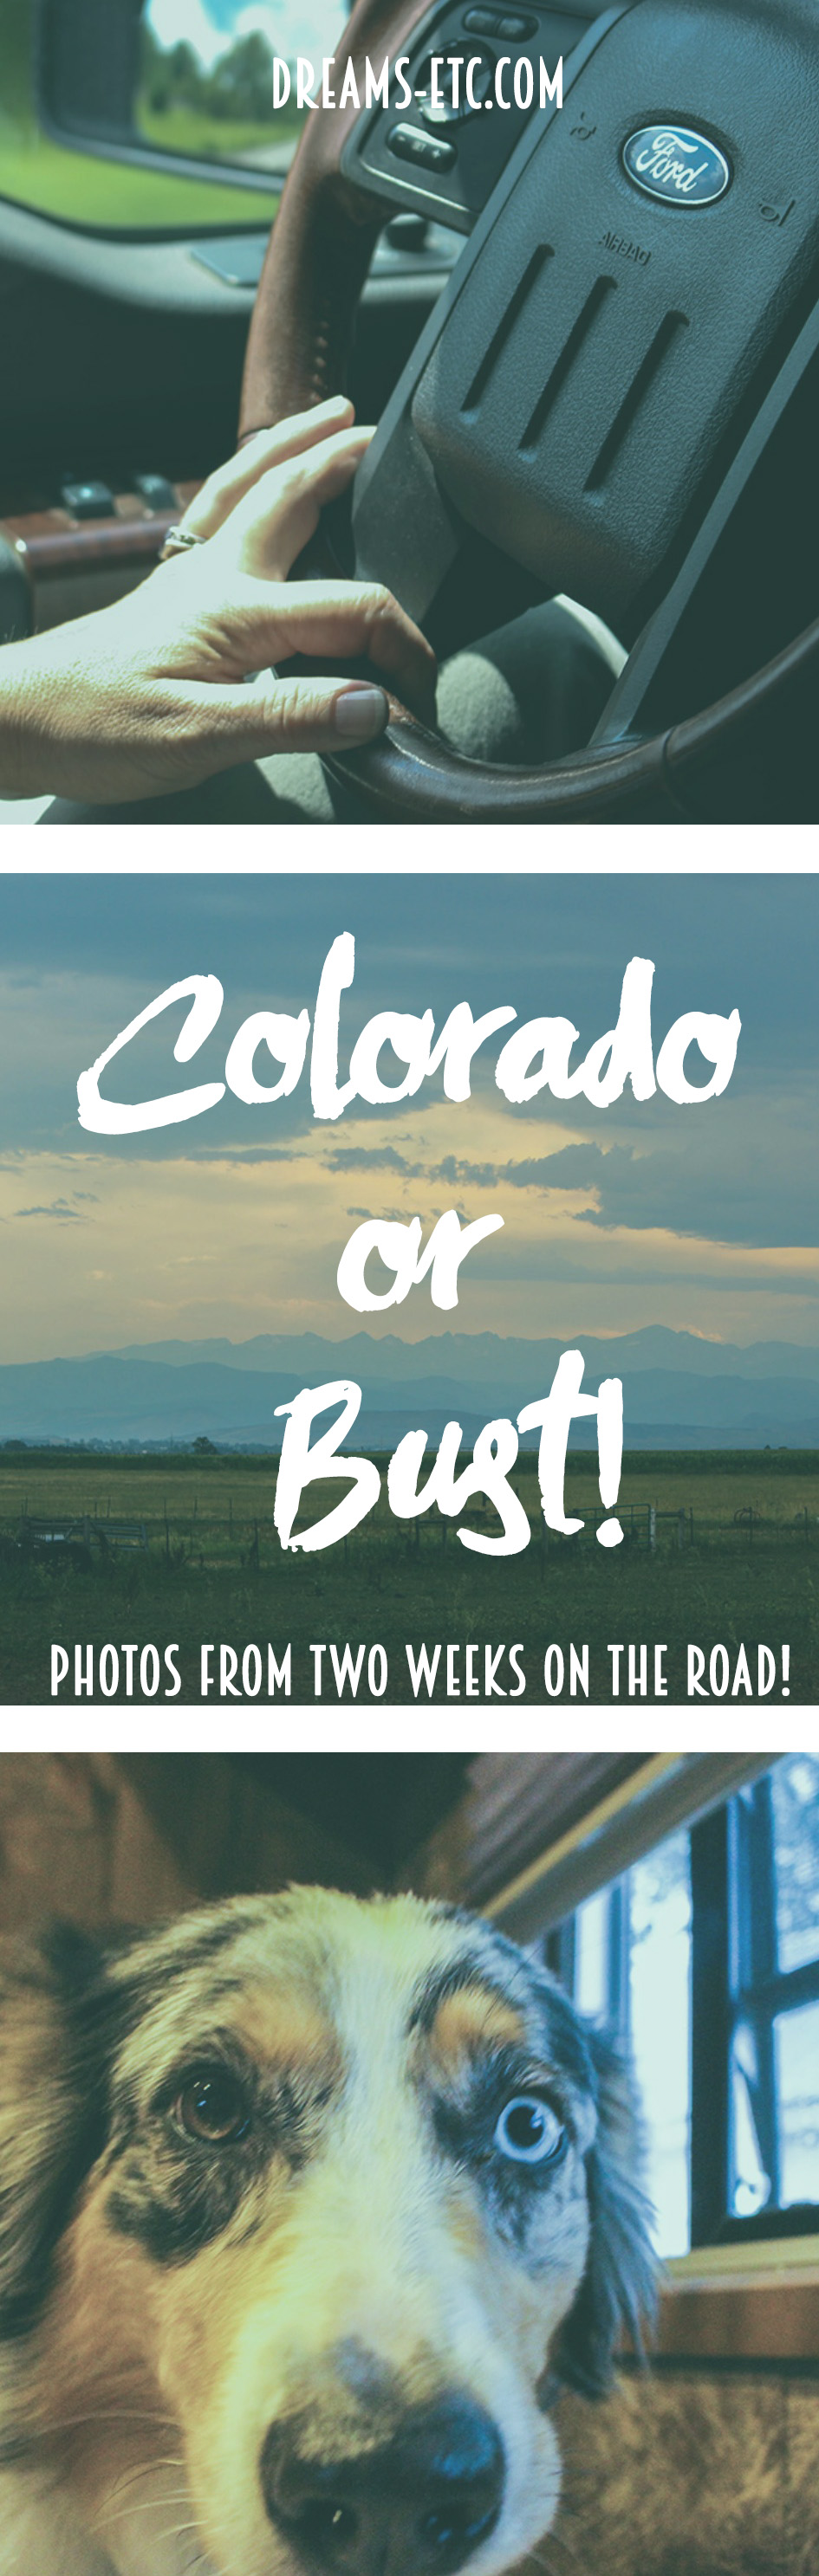 Sometimes you just need to escape your day-to-day life for awhile. A road trip to Colorado was perfect for that! Here are some photos from the trip!